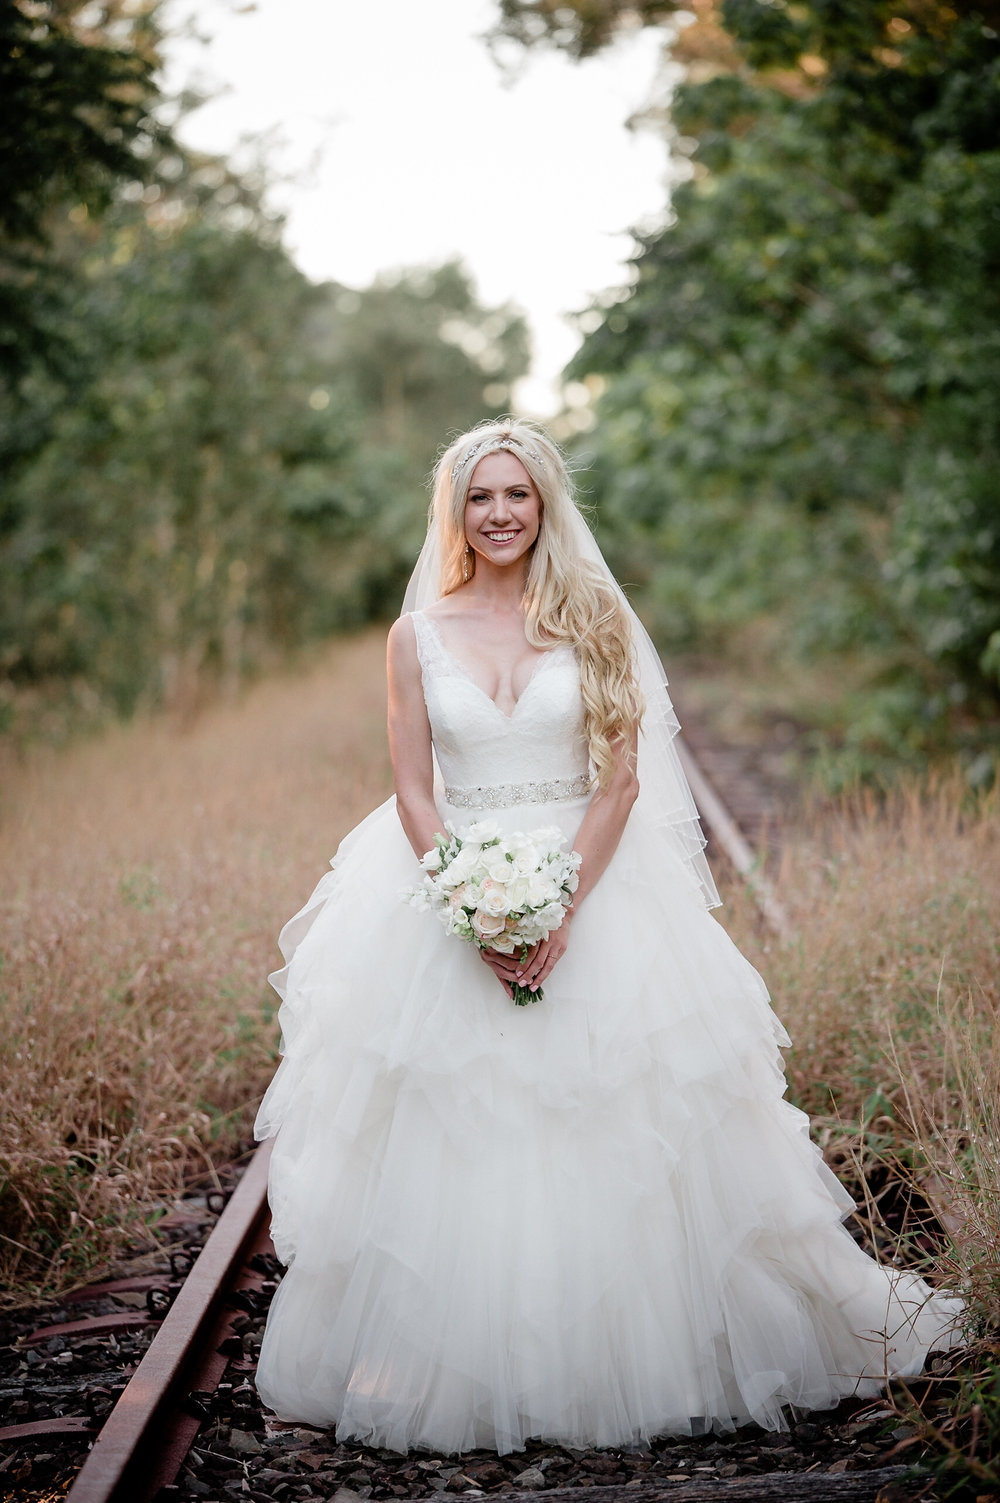 The_Belongil_Byron_Bay_Weddings_New_Black_Studios-131.jpg